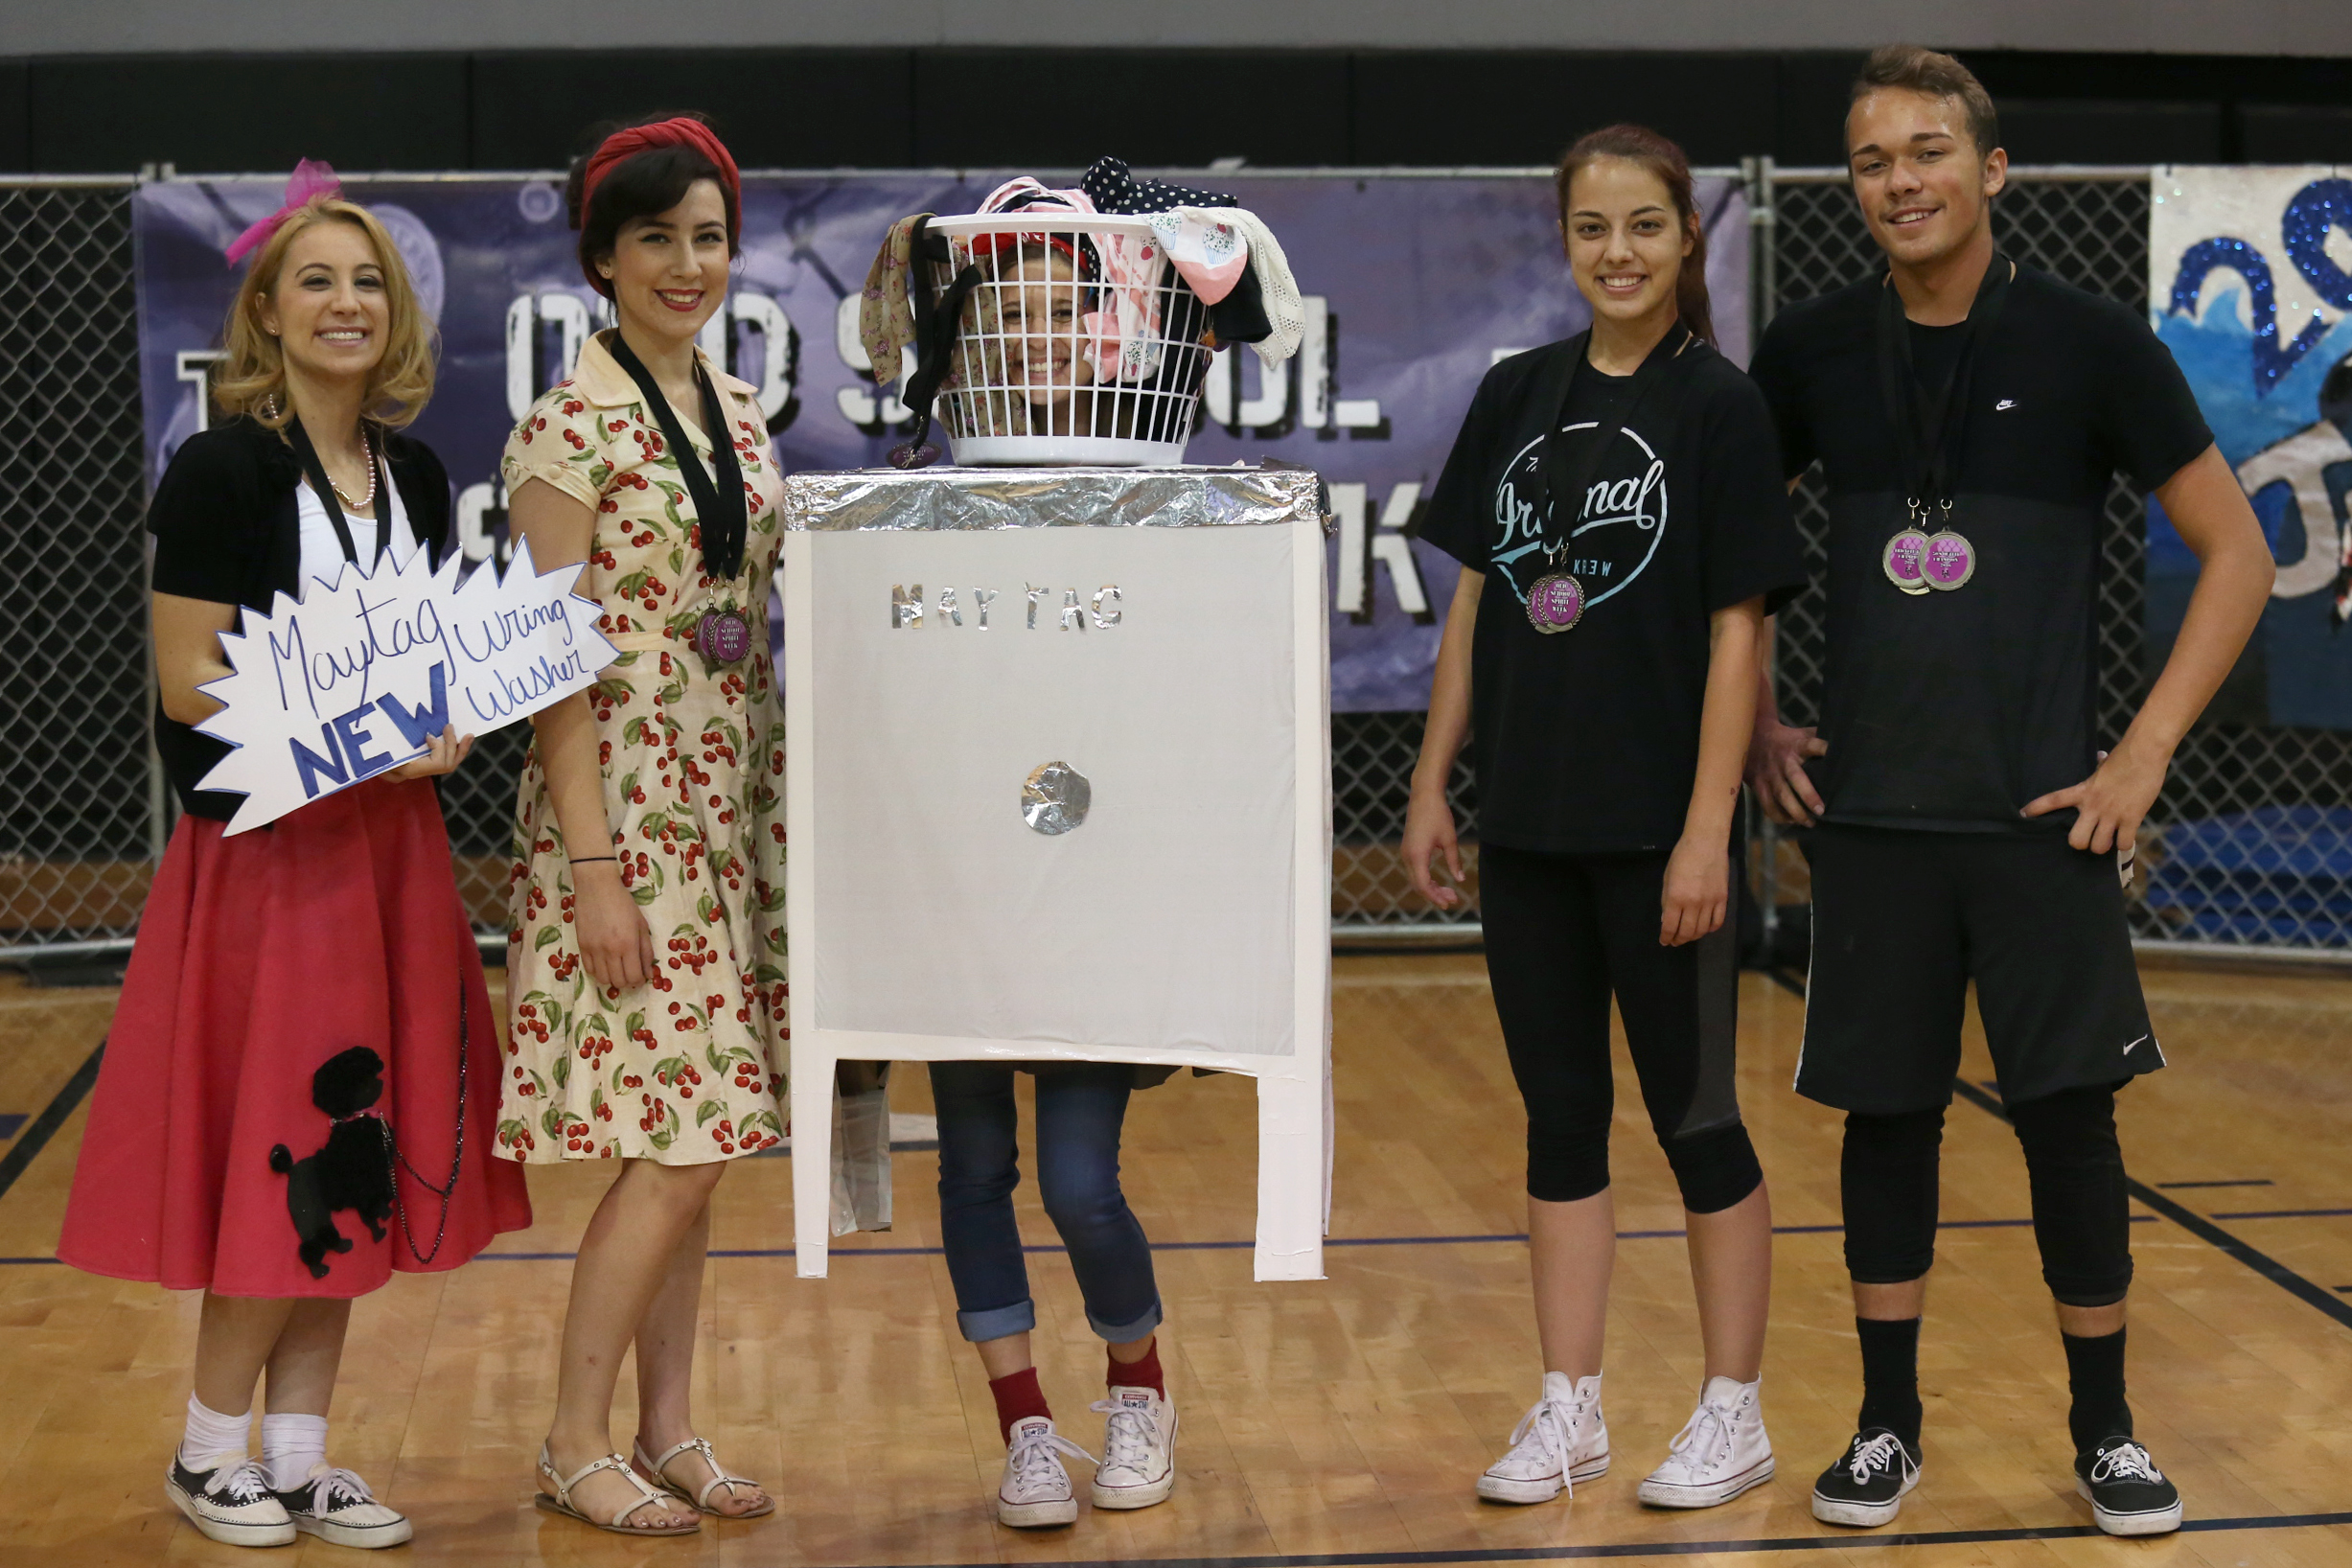 Seniors win 50's Outfit Contest